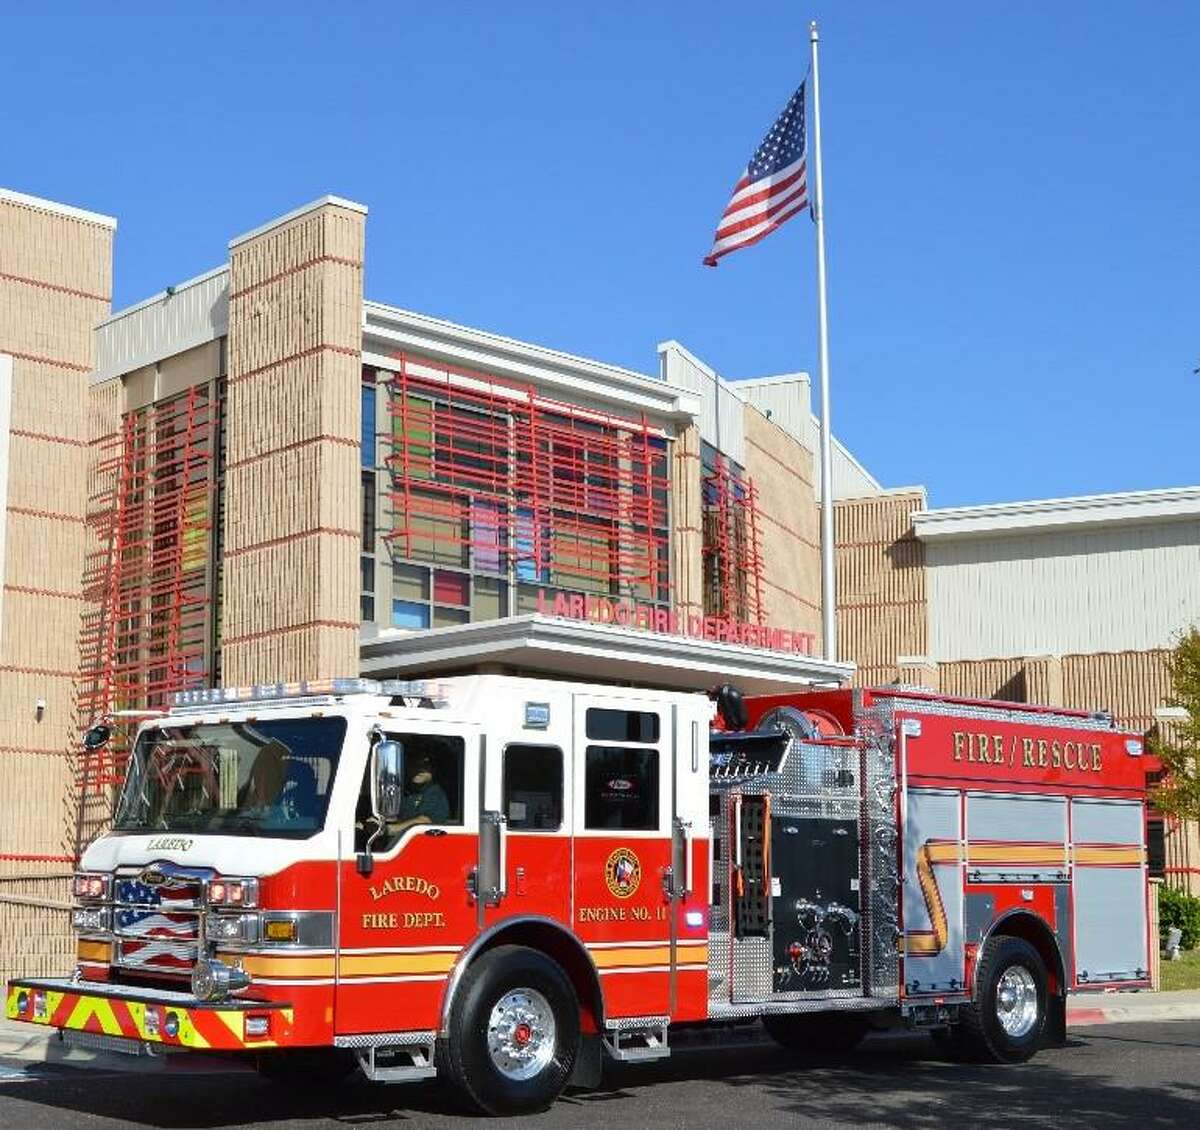 The Laredo Fire Department received this 2020 fire pumper to replace an older unit.